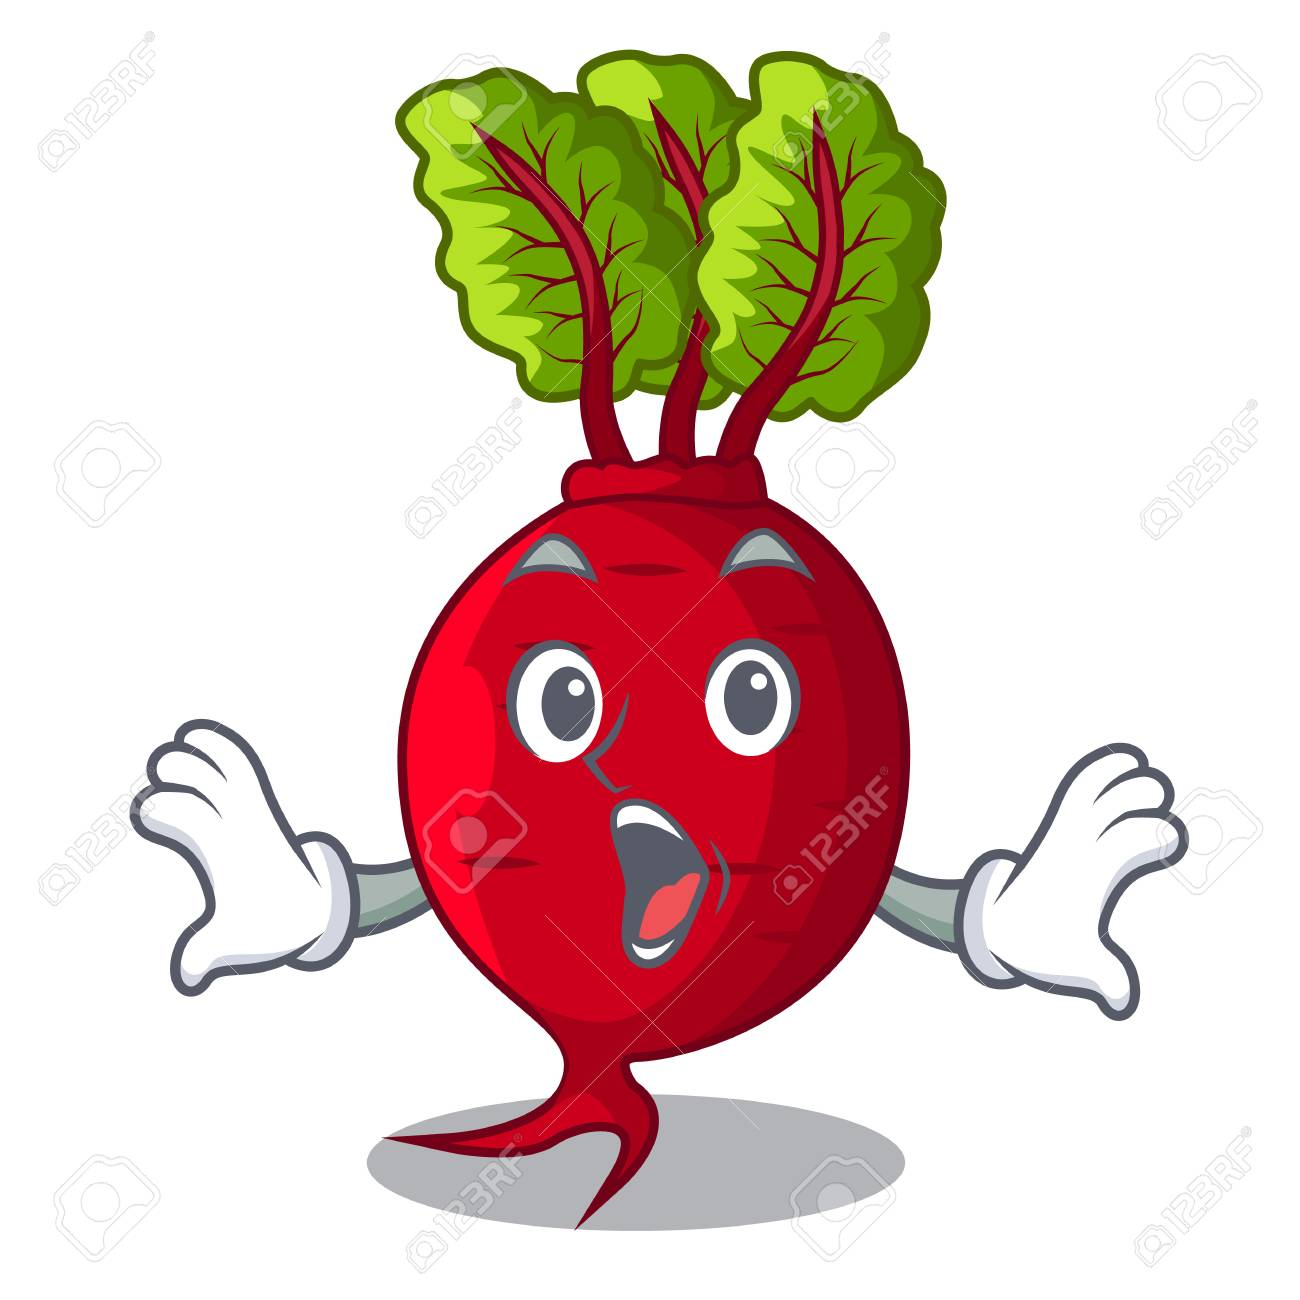 Surprised beetroot with leaves isolated on mascot vector illustration - 109756601